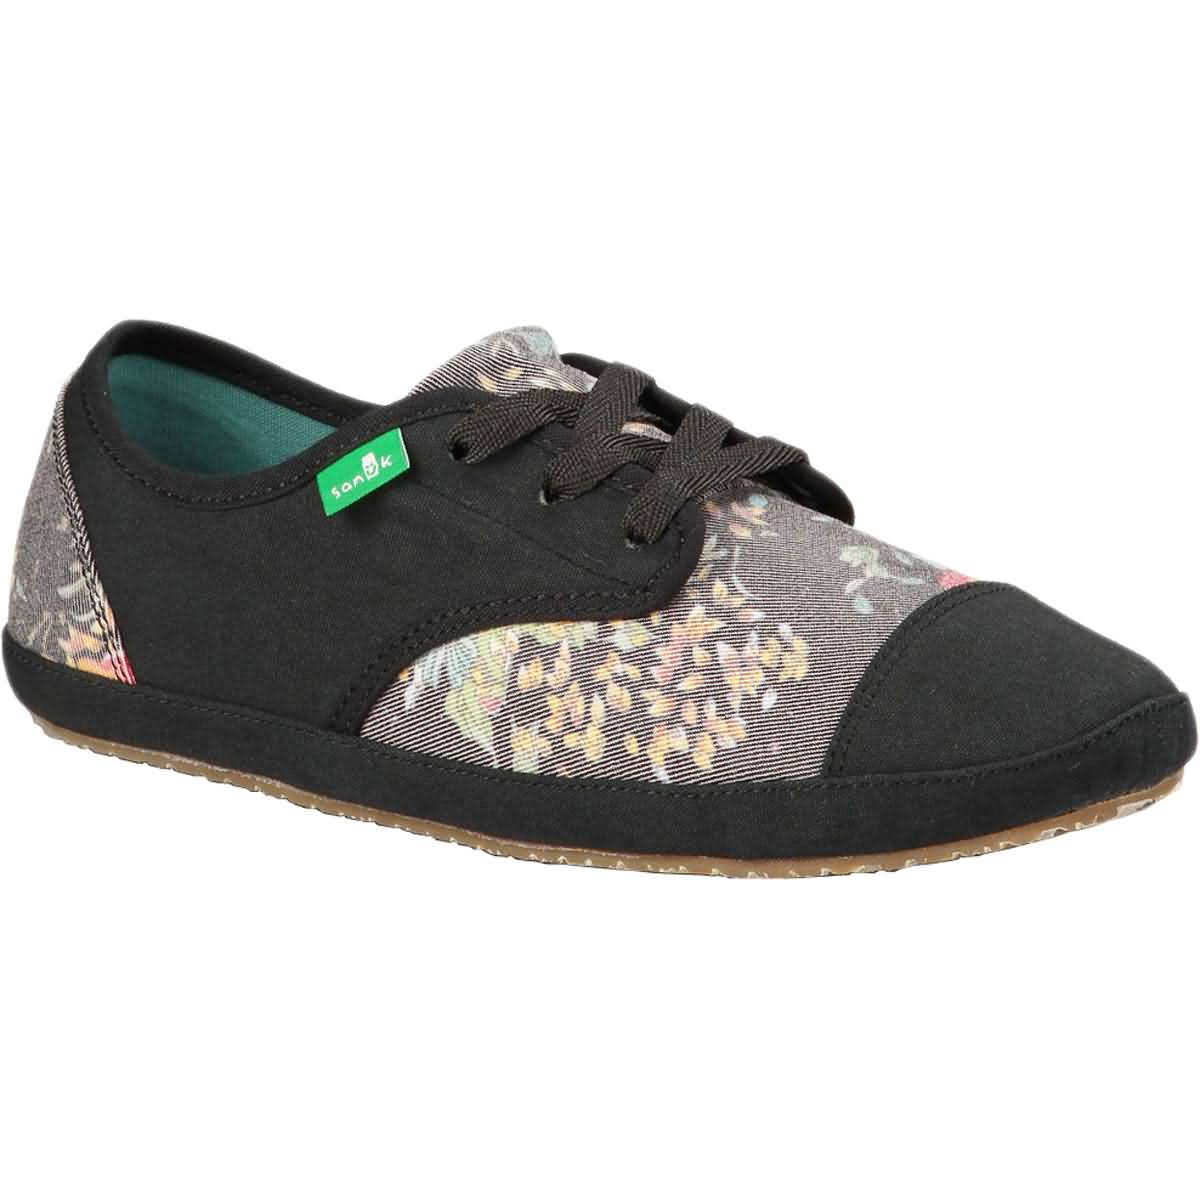 Sanuk Sock Hop Gardenia Women's Shoes Footwear-SWF10660